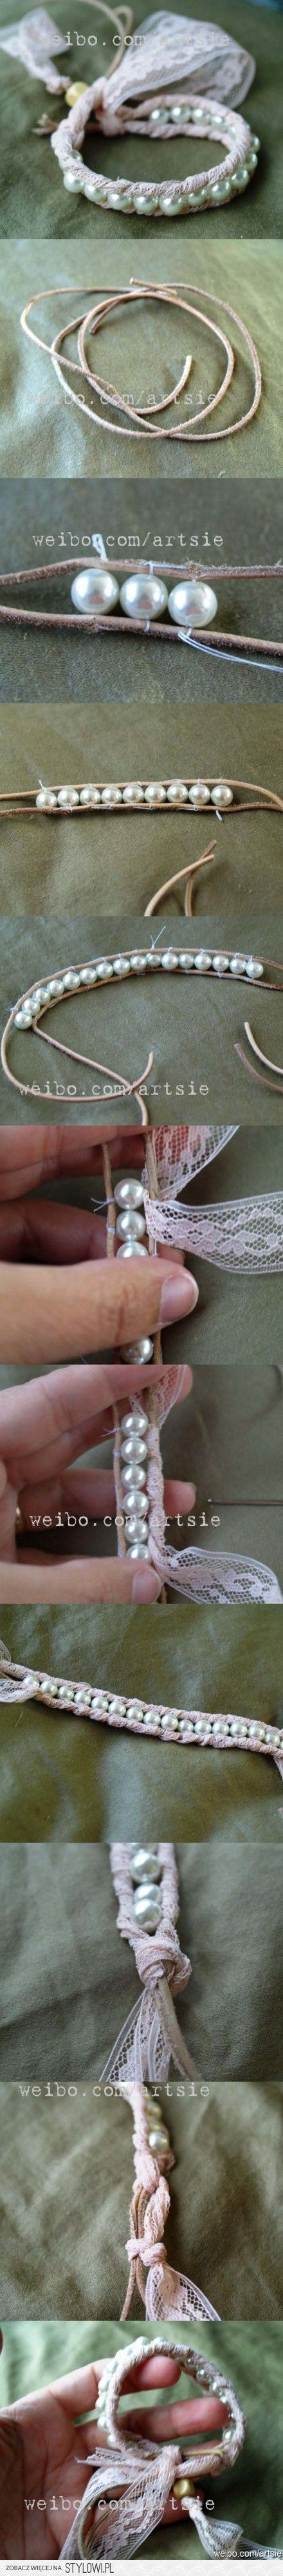 Pretty bracelet. Should repurpose my pearls from another bracelet: it's broken, but I have the beads.